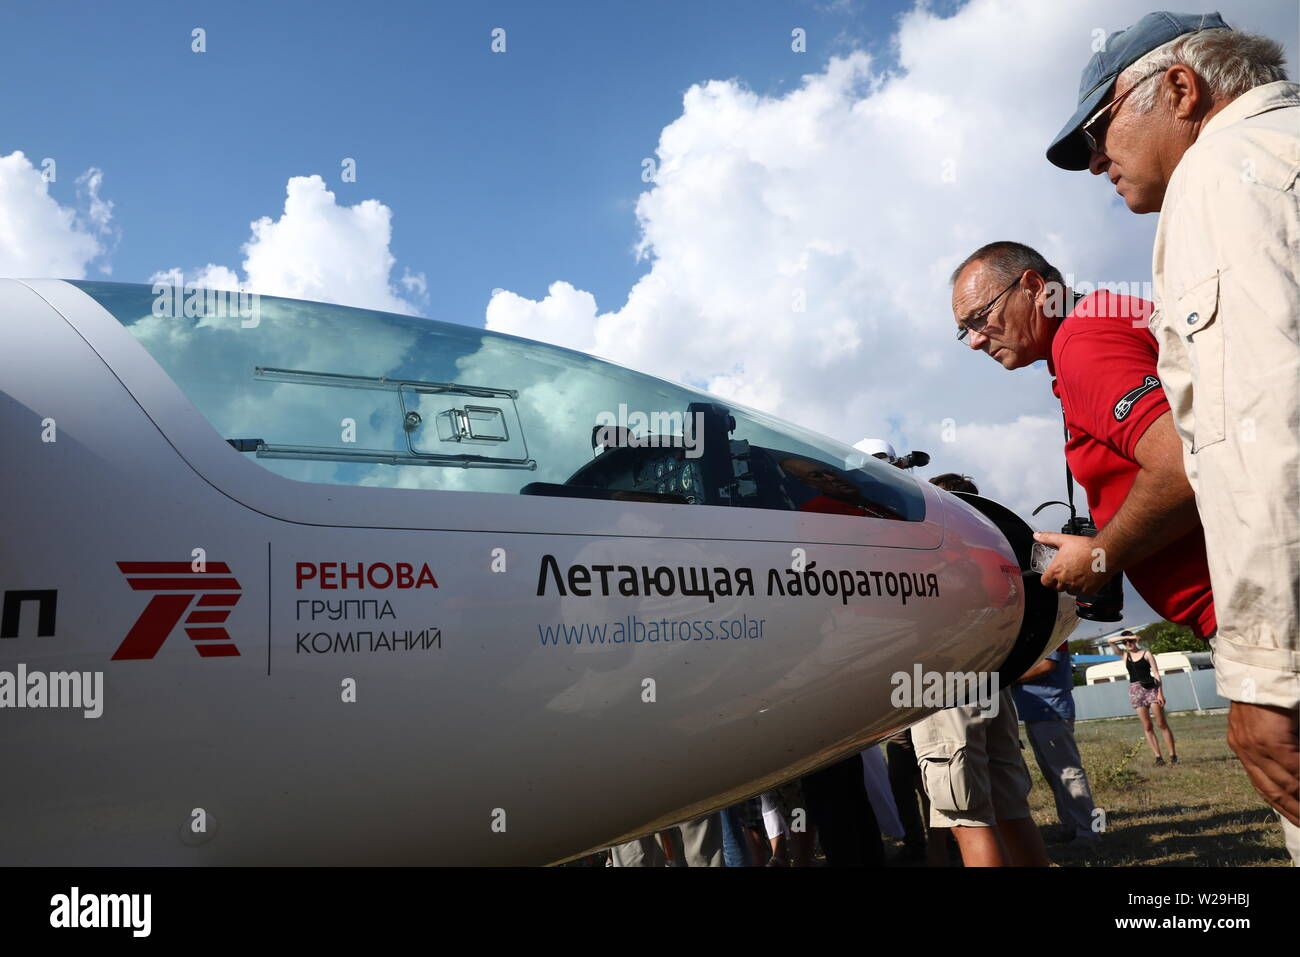 YEVPATORIA, CRIMEA, RUSSIA - JULY 6, 2019: Pictured in this